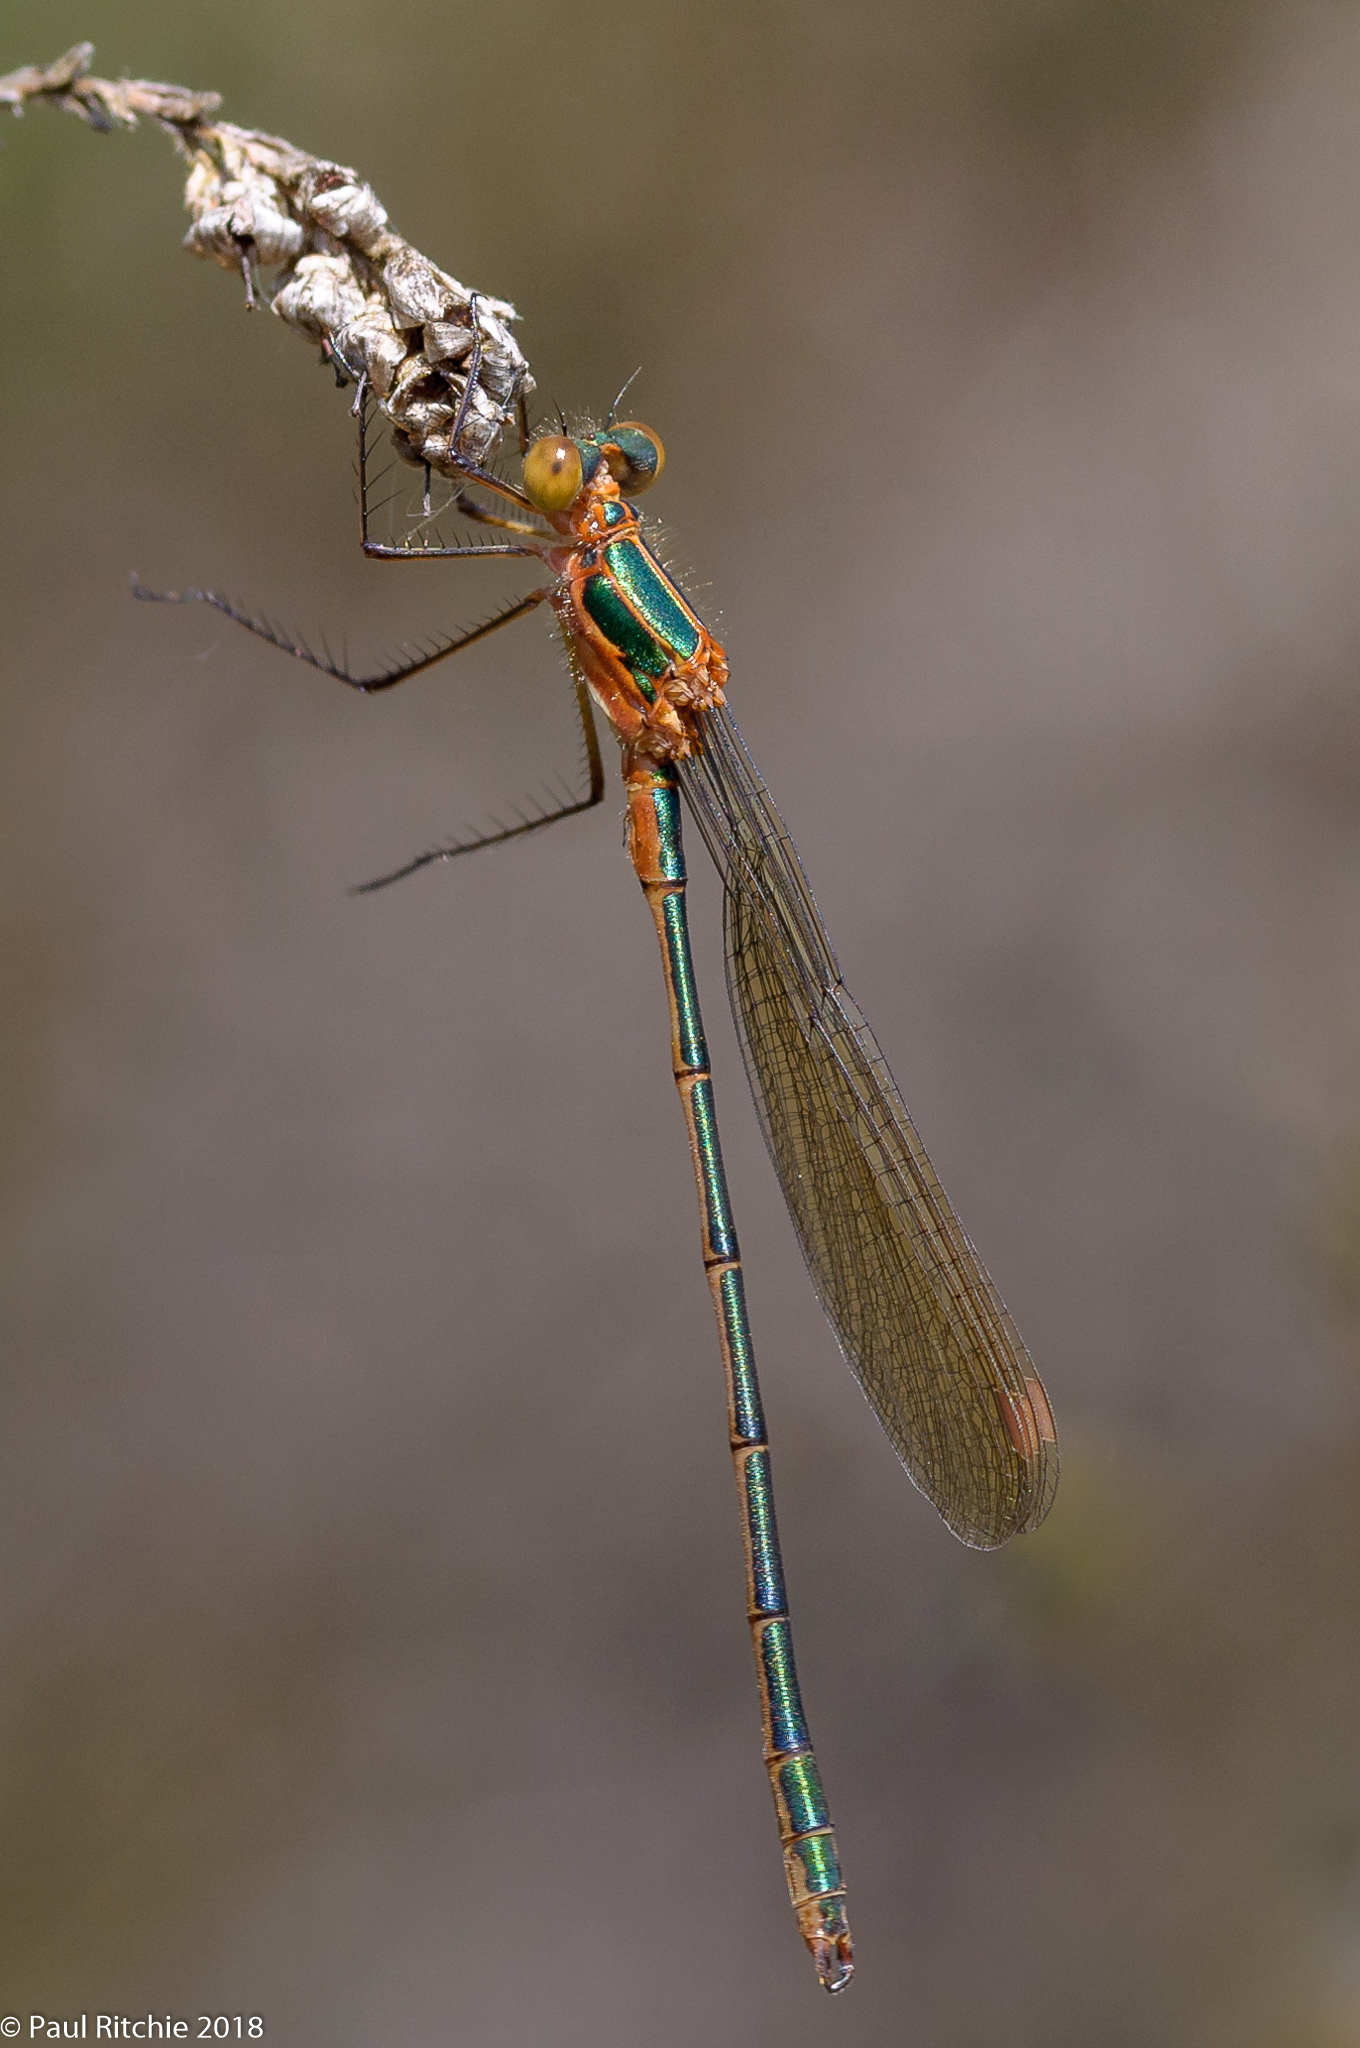 Emerald Damselfy (Lestes sponsa) - immature male